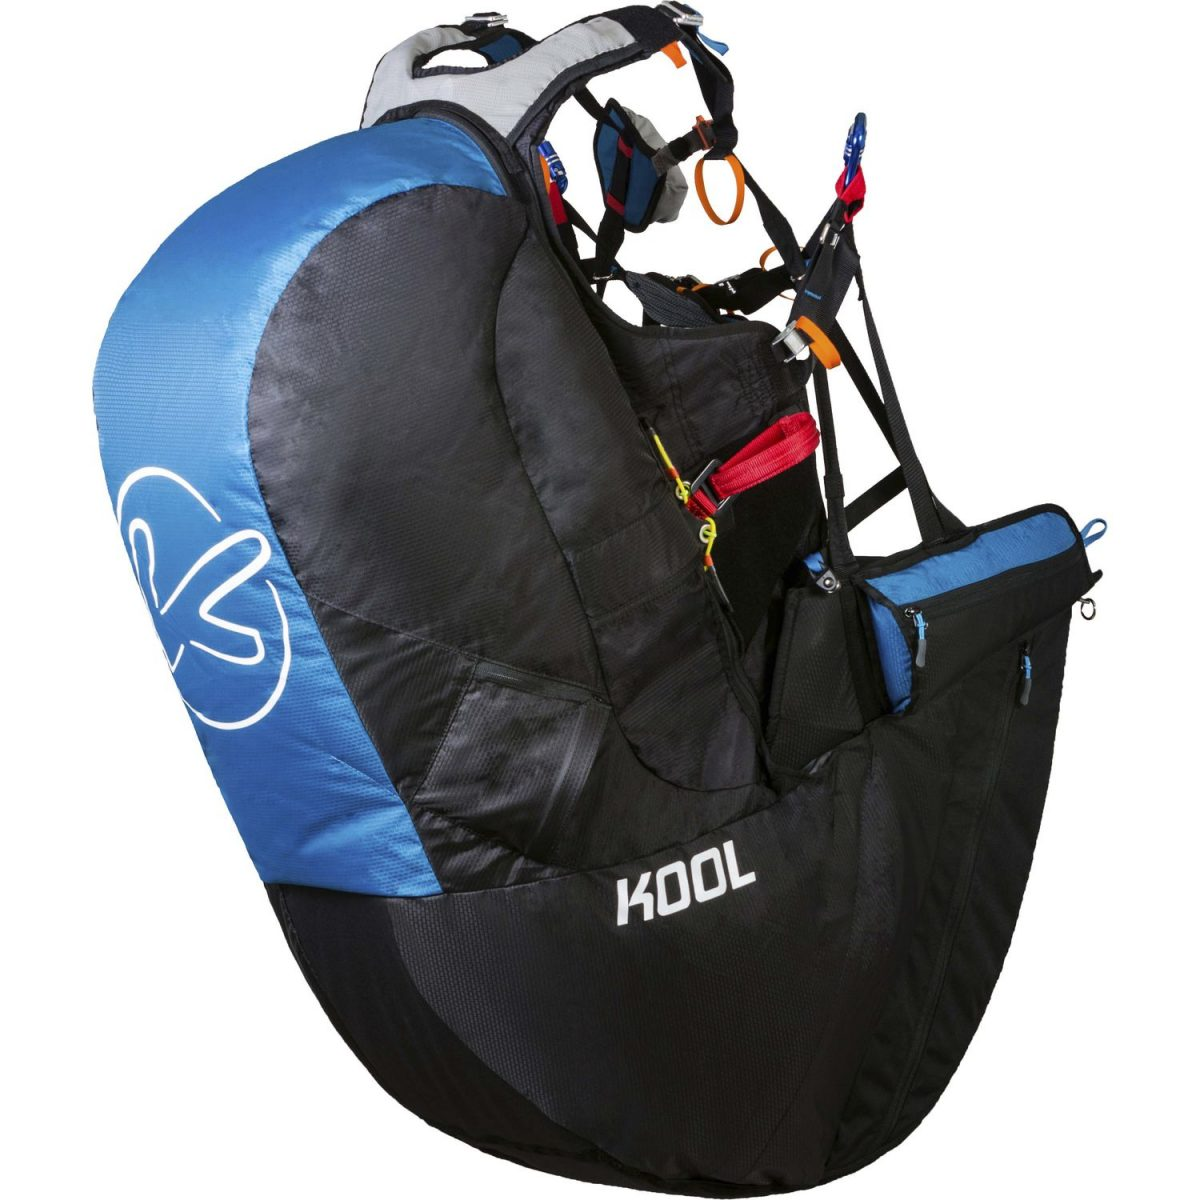 Kortel Kool paraglding harness in South Afrika by XC Paragliding